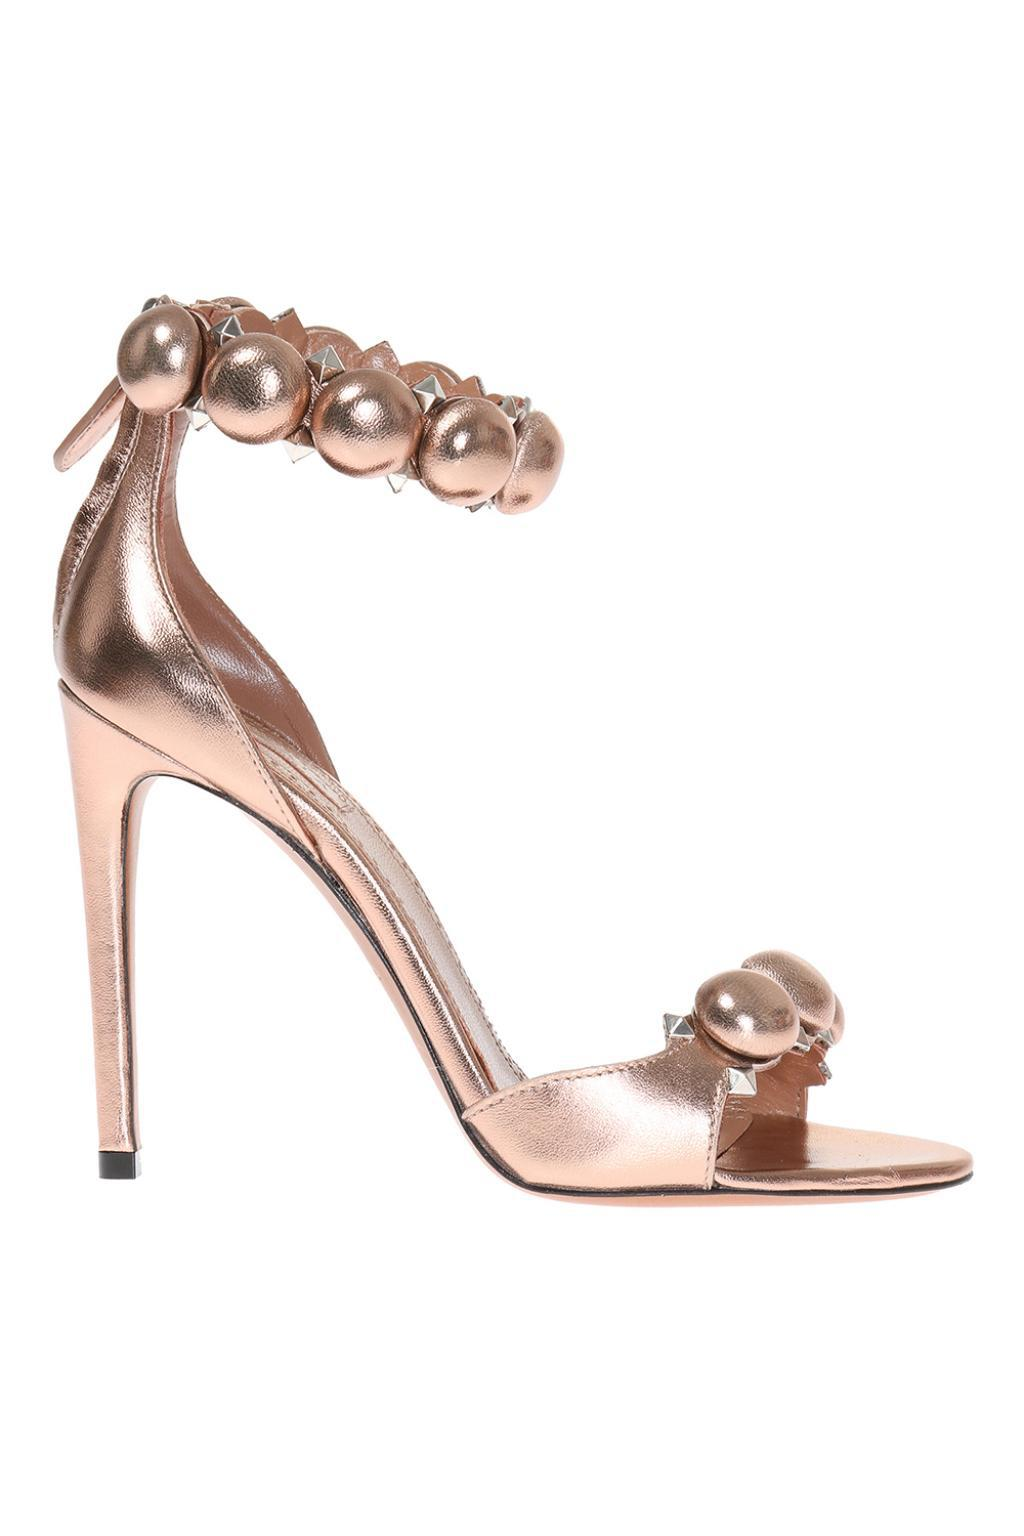 3a31305bb65 Lyst - Alaïa Leather High Heel Sandals in Metallic